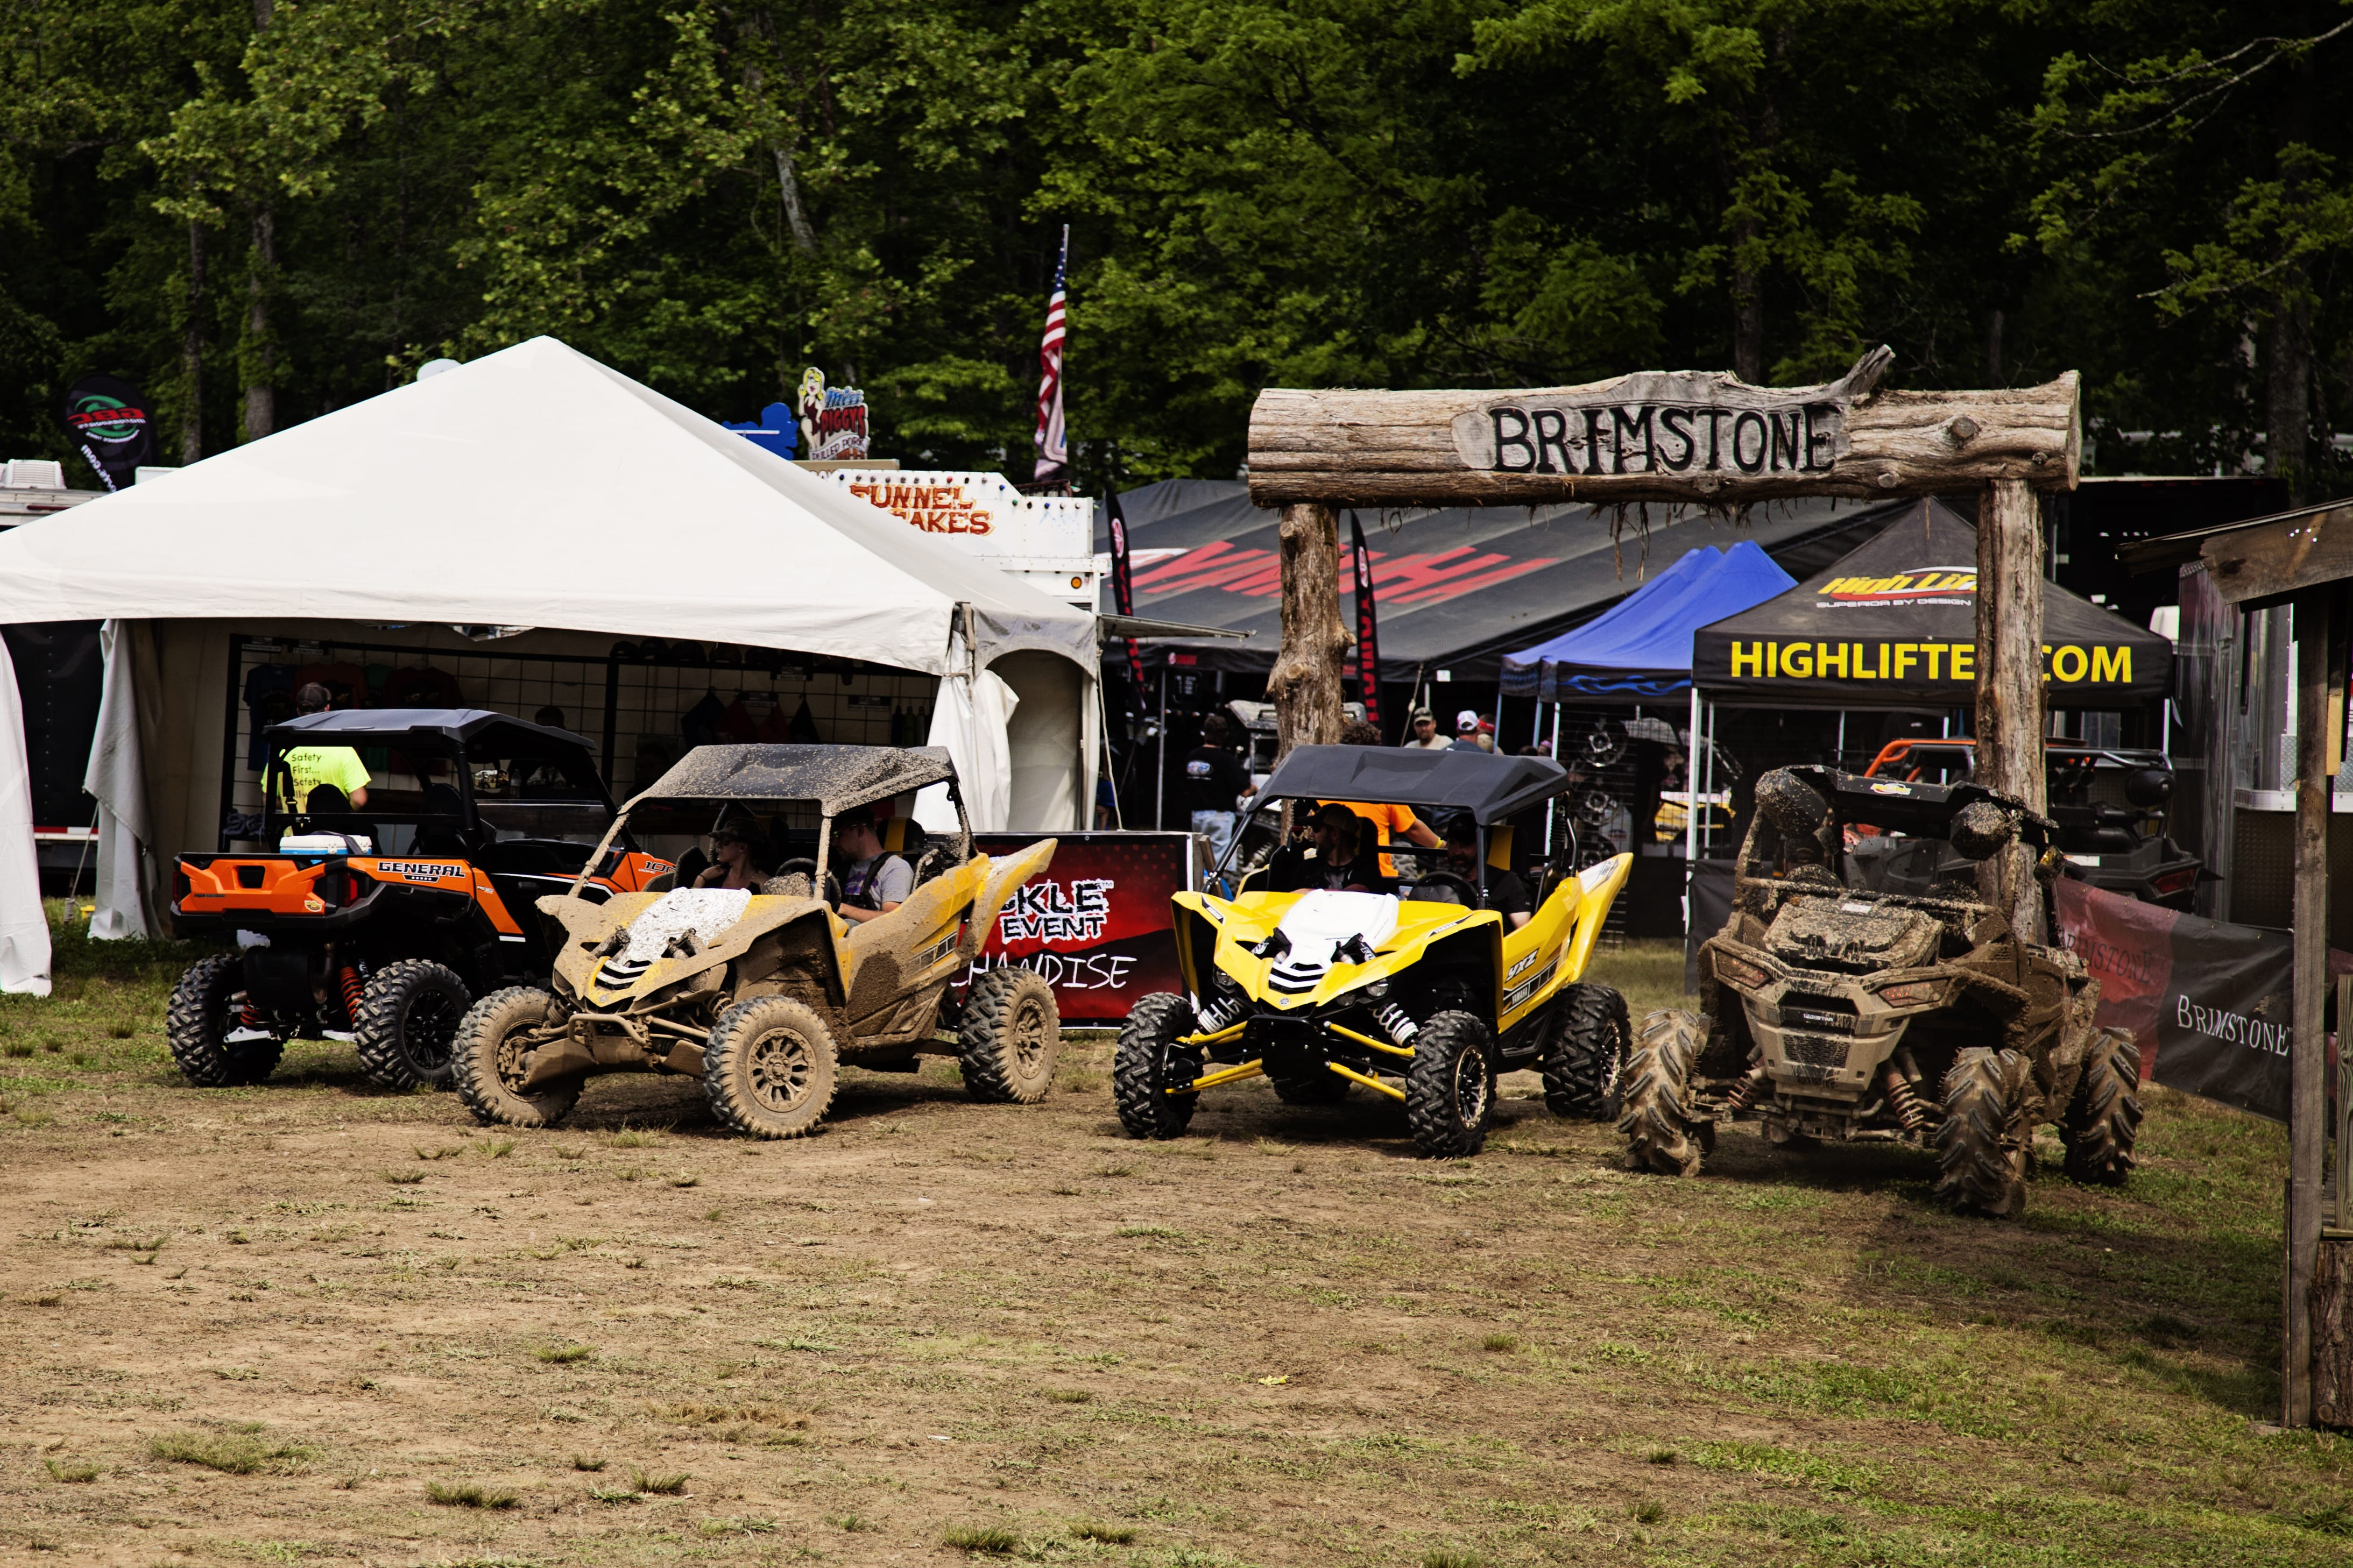 Brimstone Recreation Atv Park In Tn Plan Your Adventure